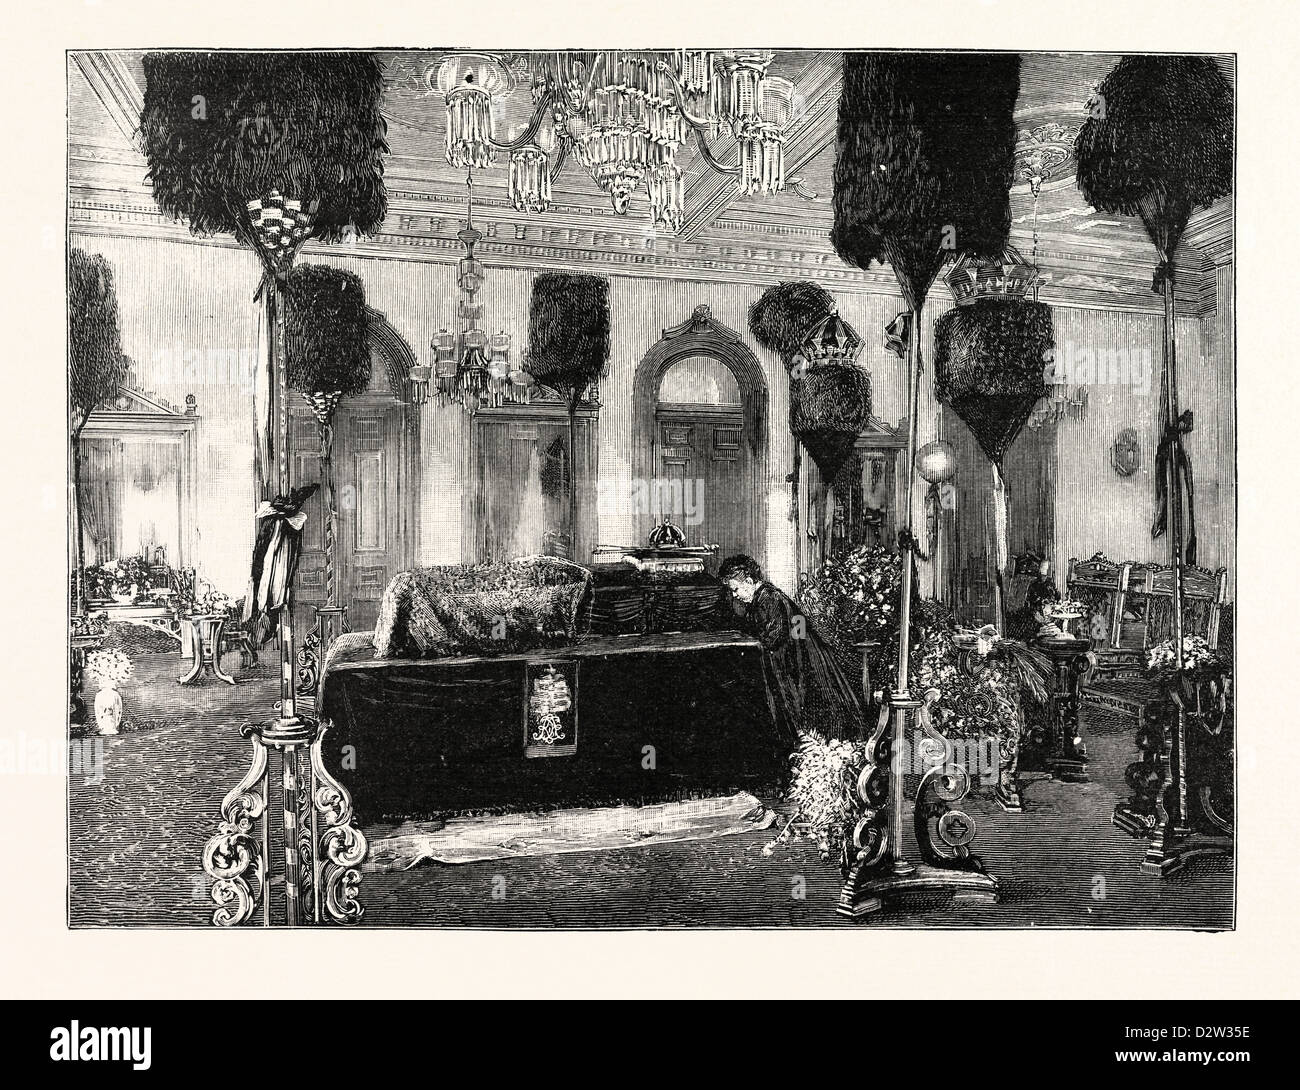 THE QUEEN DOWAGER KAPIOLANI KNEELING BESIDE HER HUSBAND'S COFFIN IN THE PALACE AT HONOLULU - Stock Image